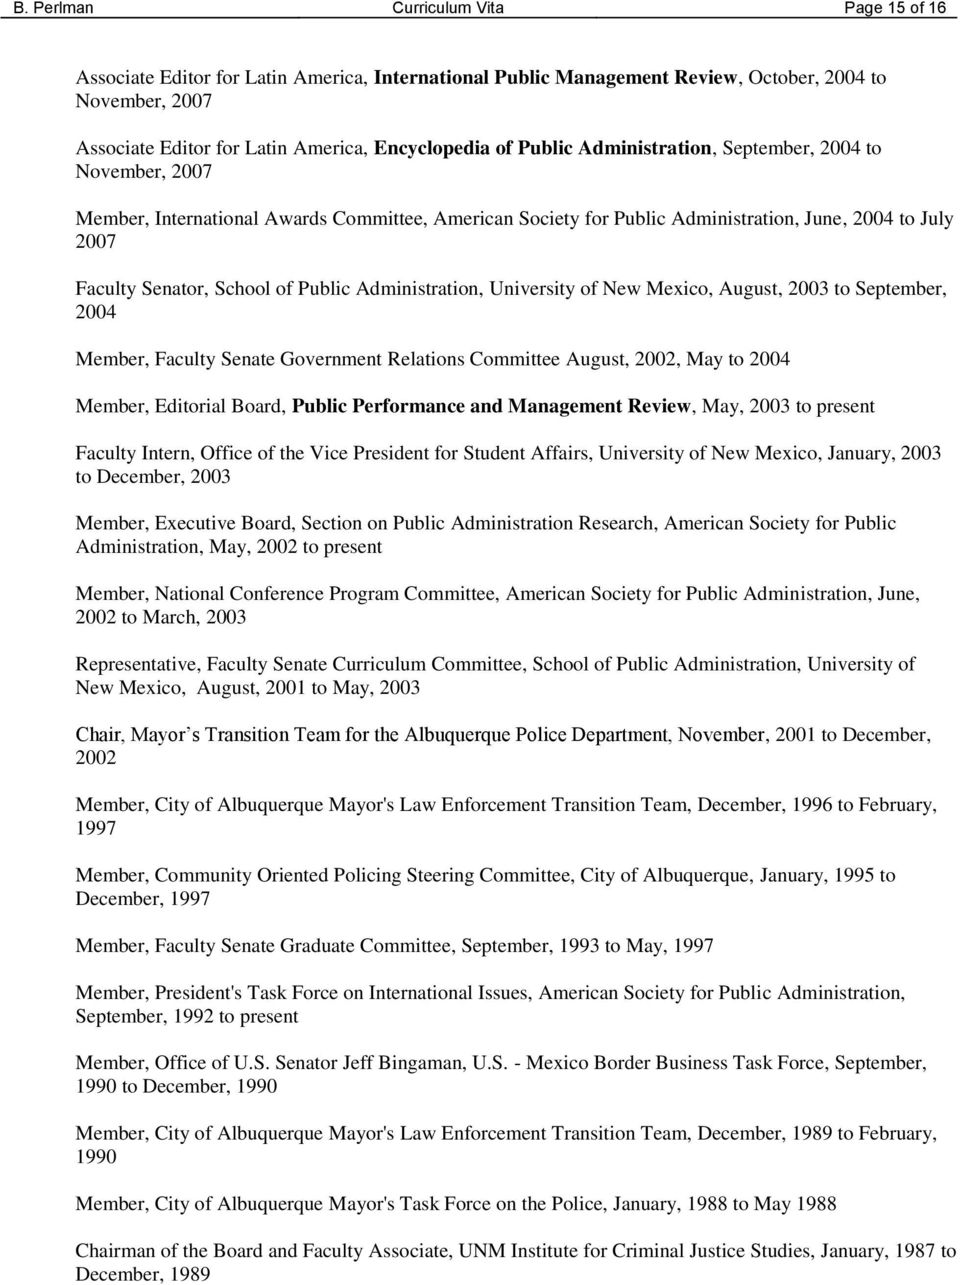 Public Administration, University of New Mexico, August, 2003 to September, 2004 Member, Faculty Senate Government Relations Committee August, 2002, May to 2004 Member, Editorial Board, Public